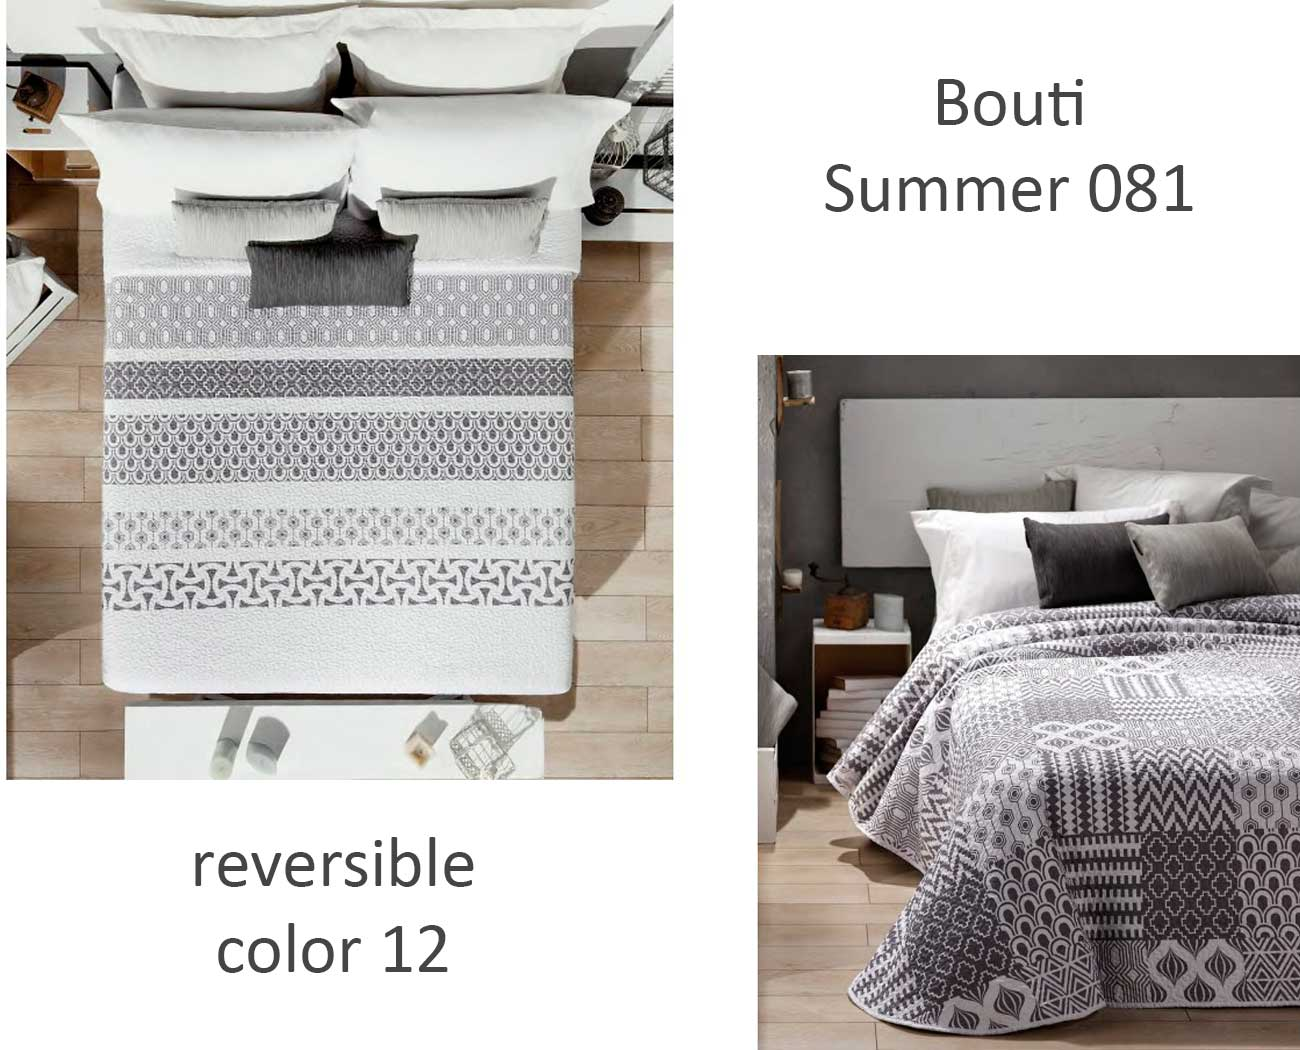 COLCHA BOUTI SUMMER 081 color 12 90 cms